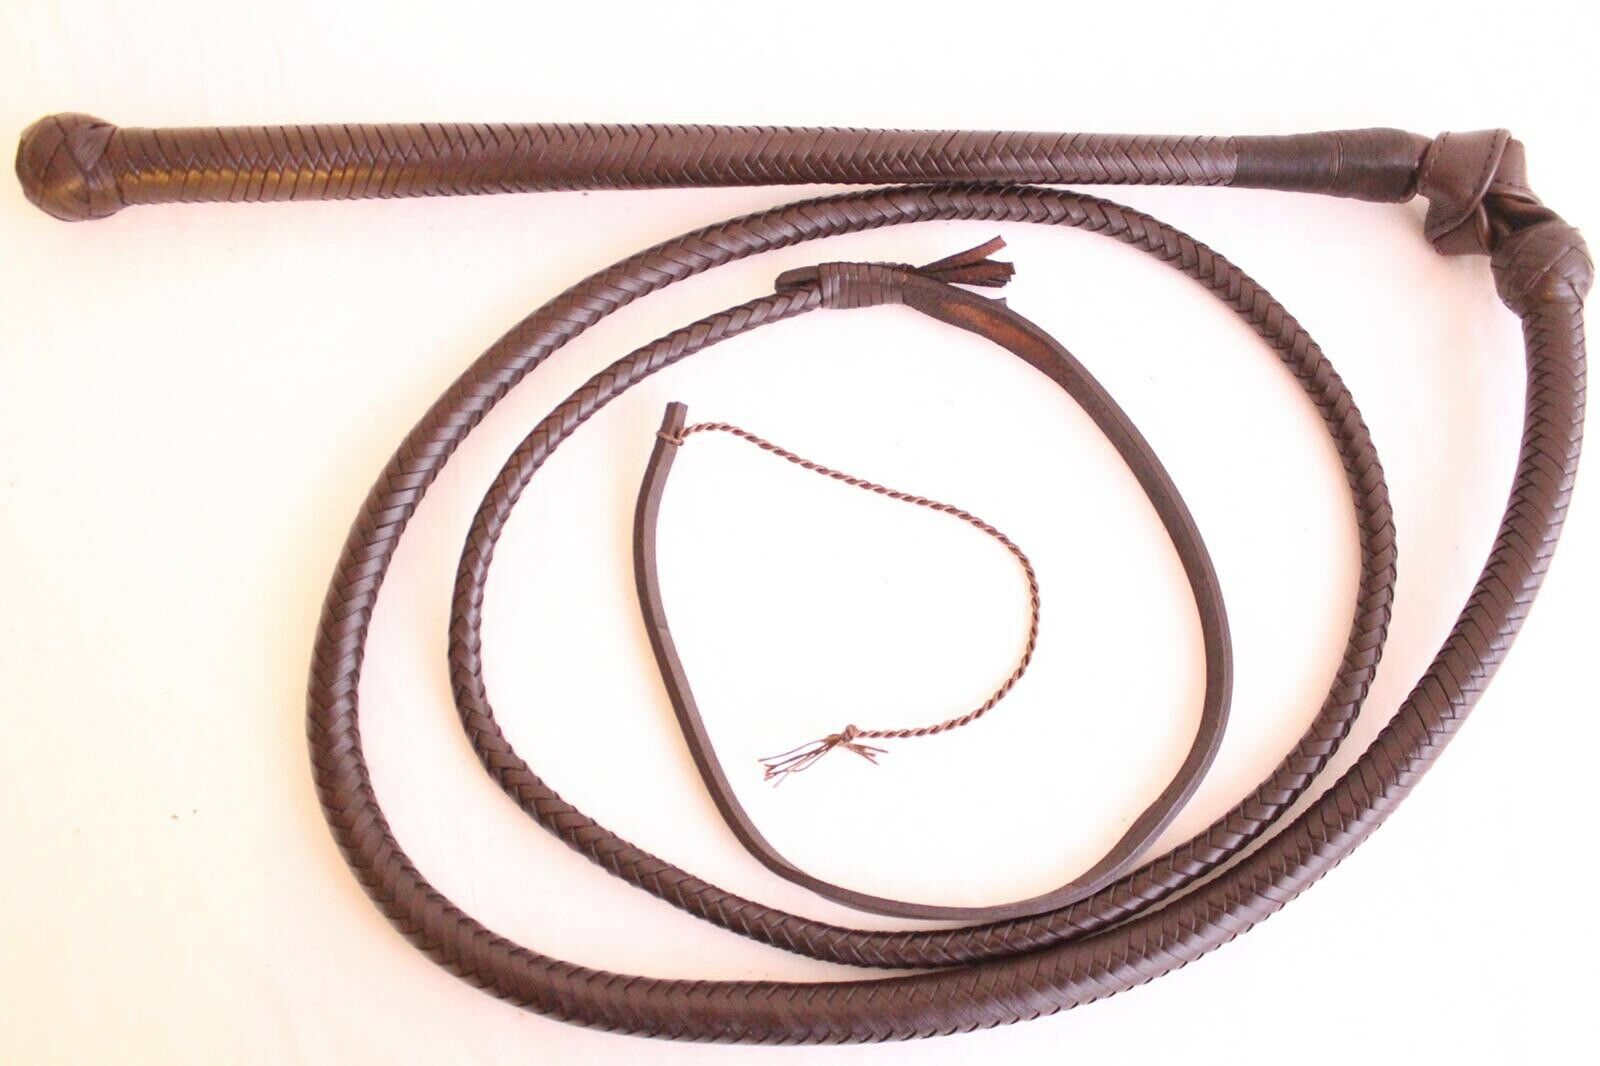 6 Feet Long Stock whip, 12 Plaited Genuine Cow Leather, Heavy Duty, Hand Crafted